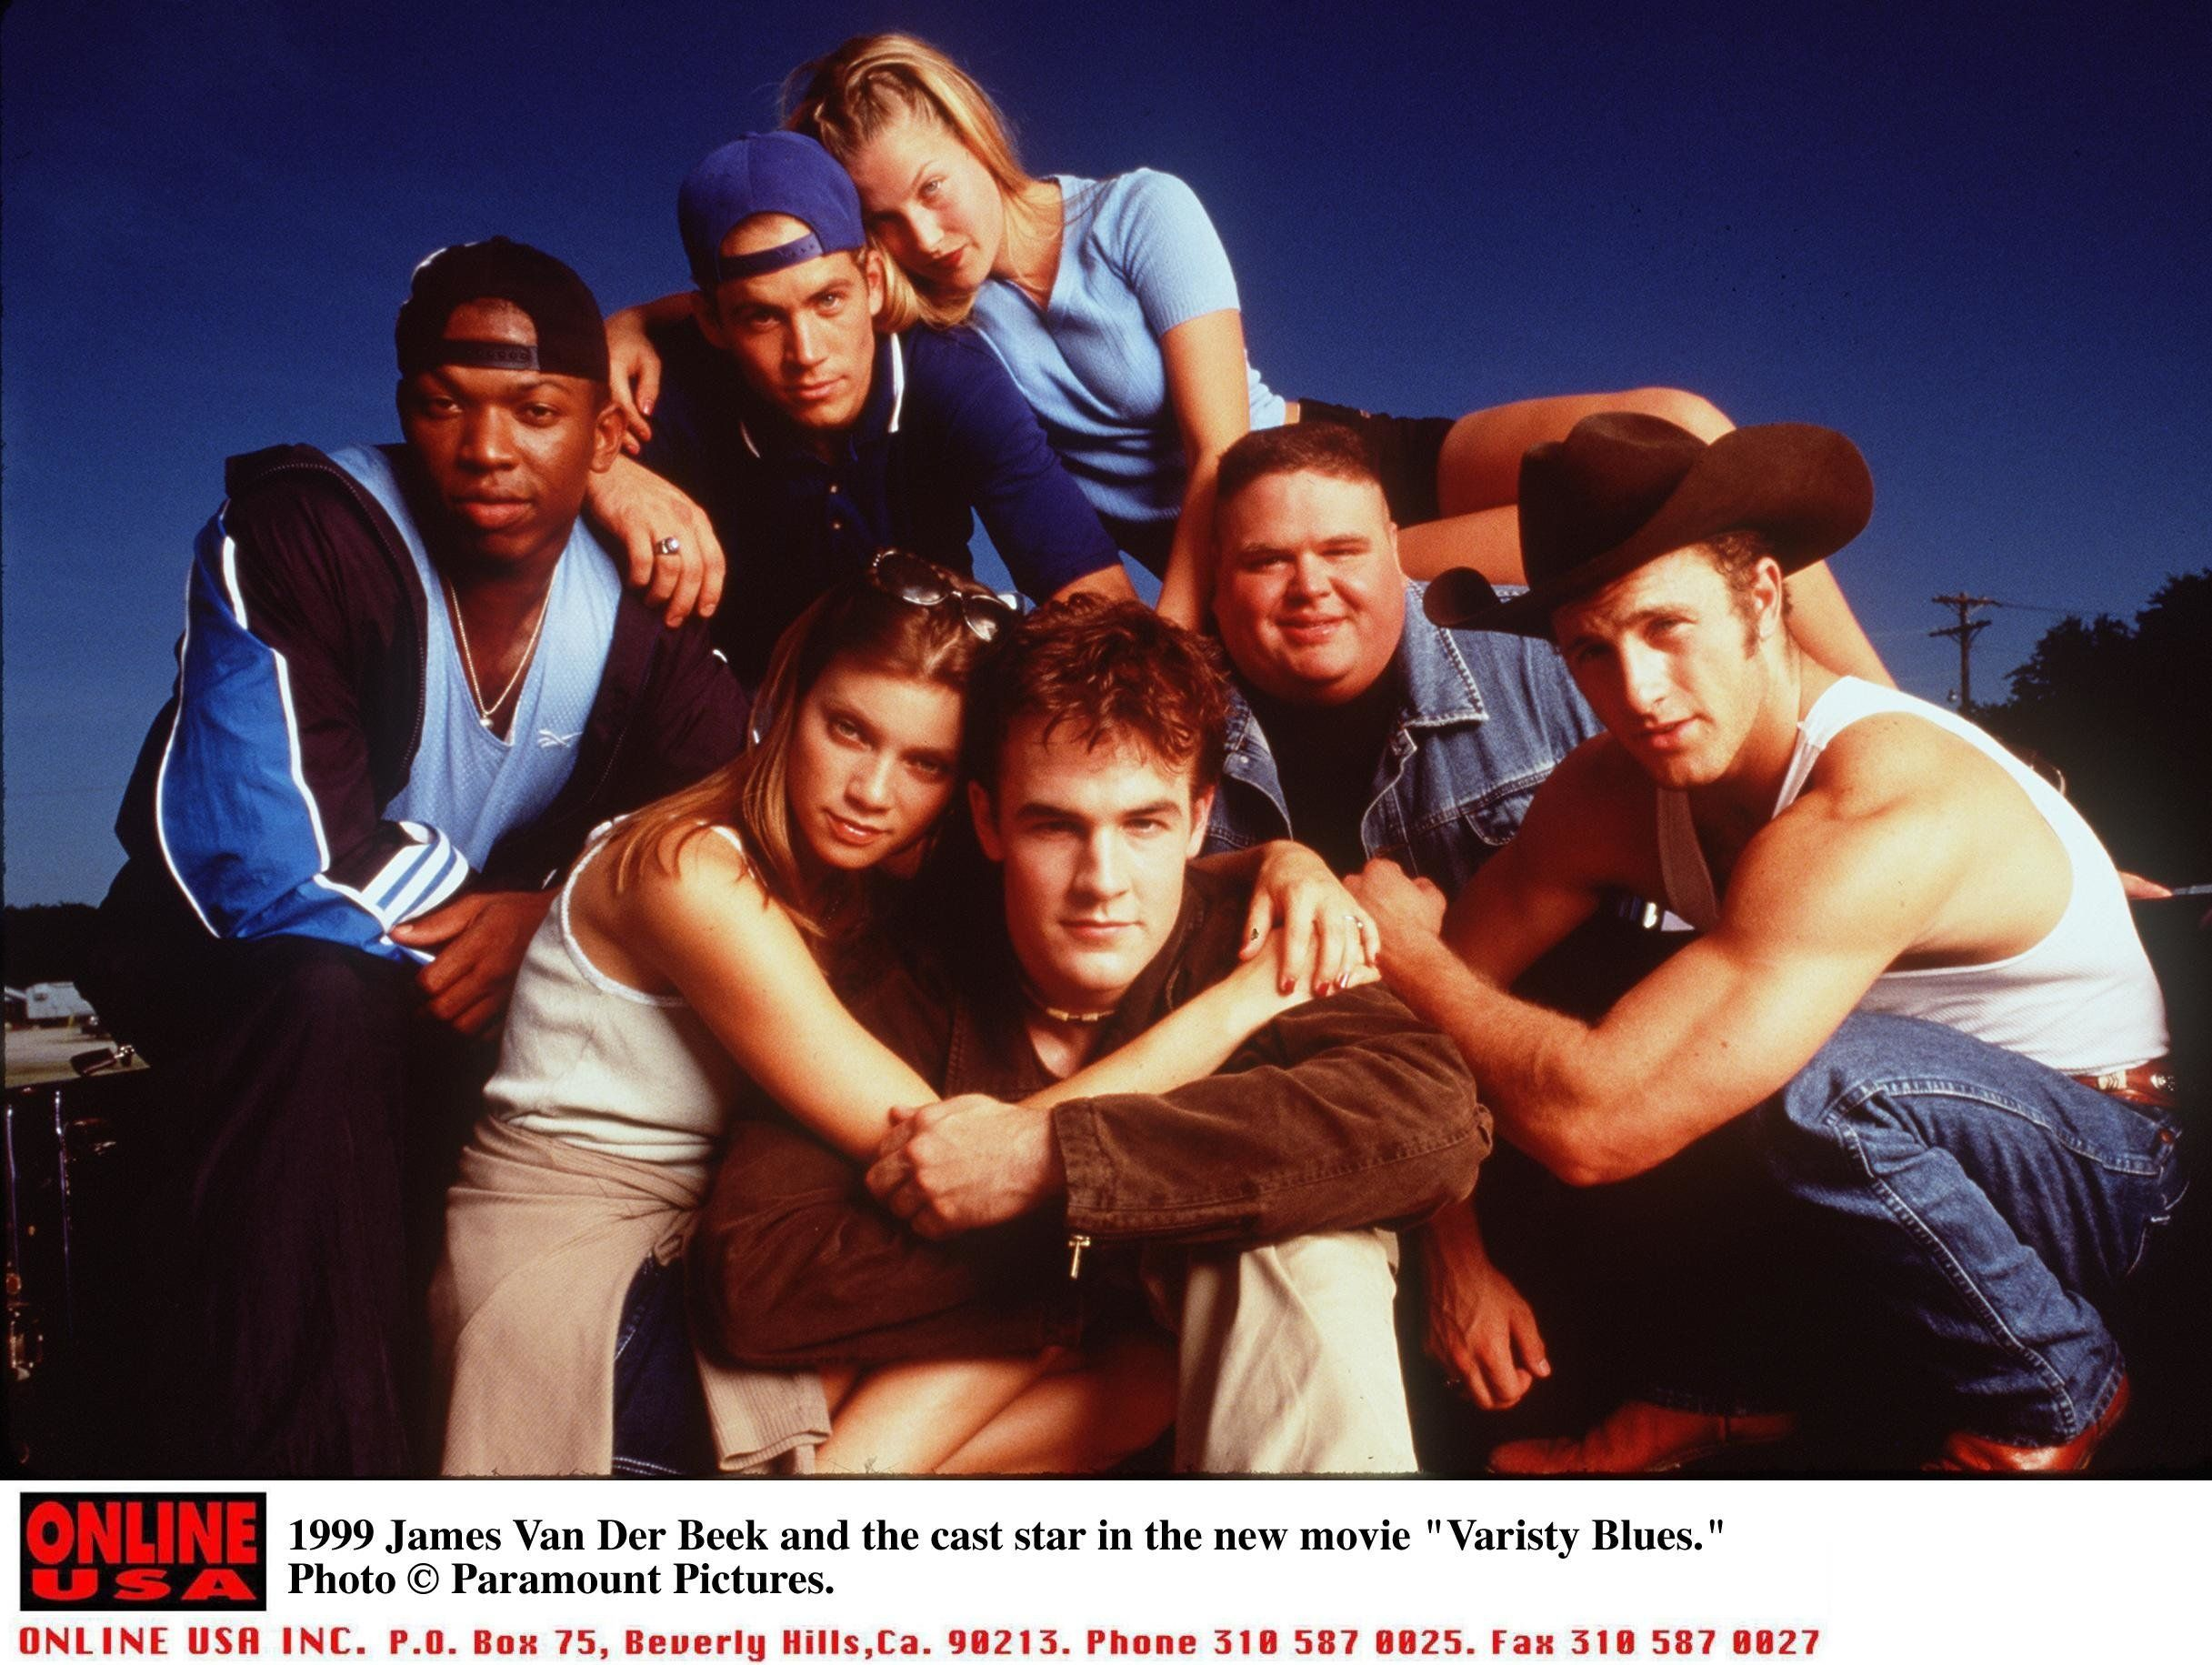 1999 James Van Der Beek And The Cast Star In The New Movie 'Varsity Blues.' (Photo By Getty Images)